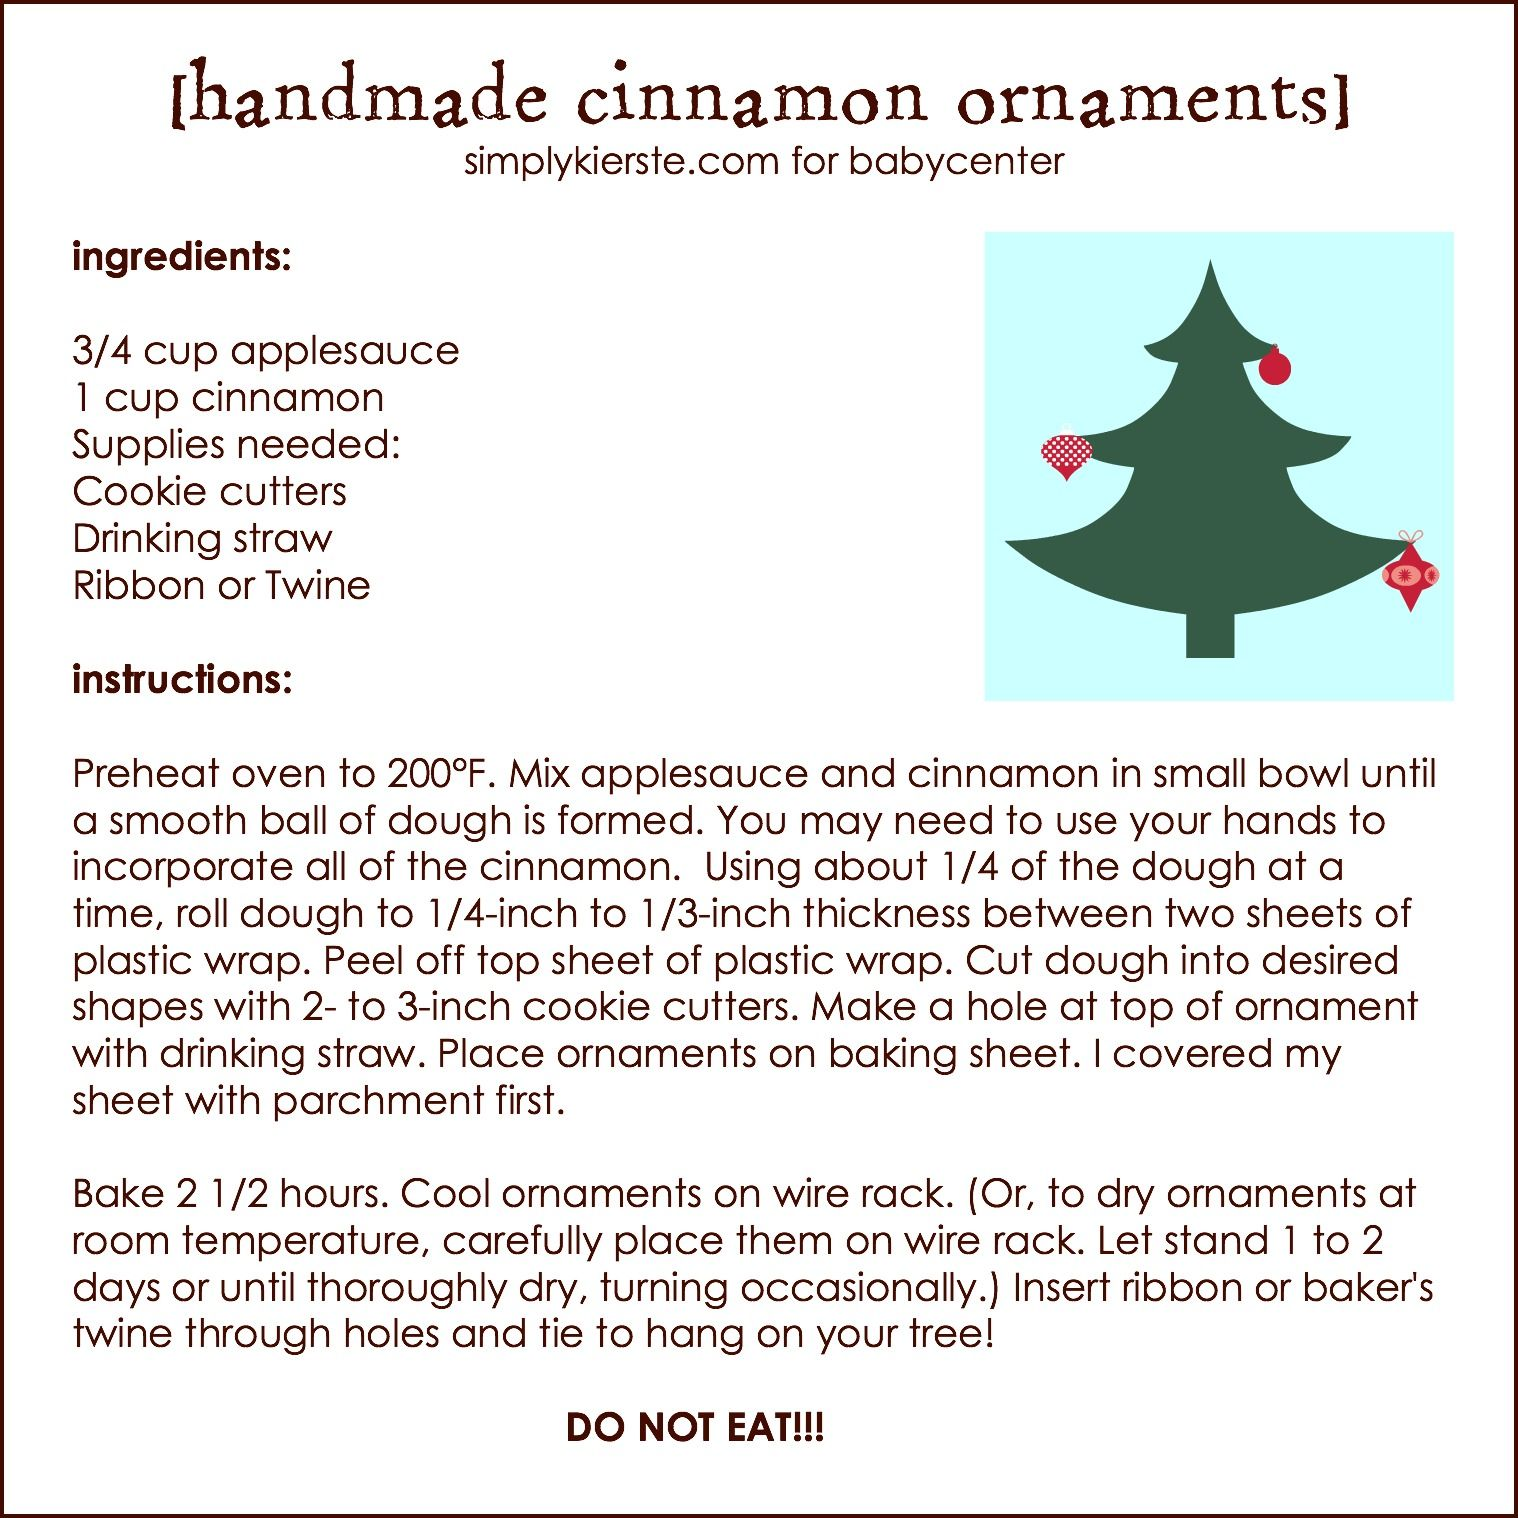 Making Holiday Memories With Handmade Cinnamon Ornaments